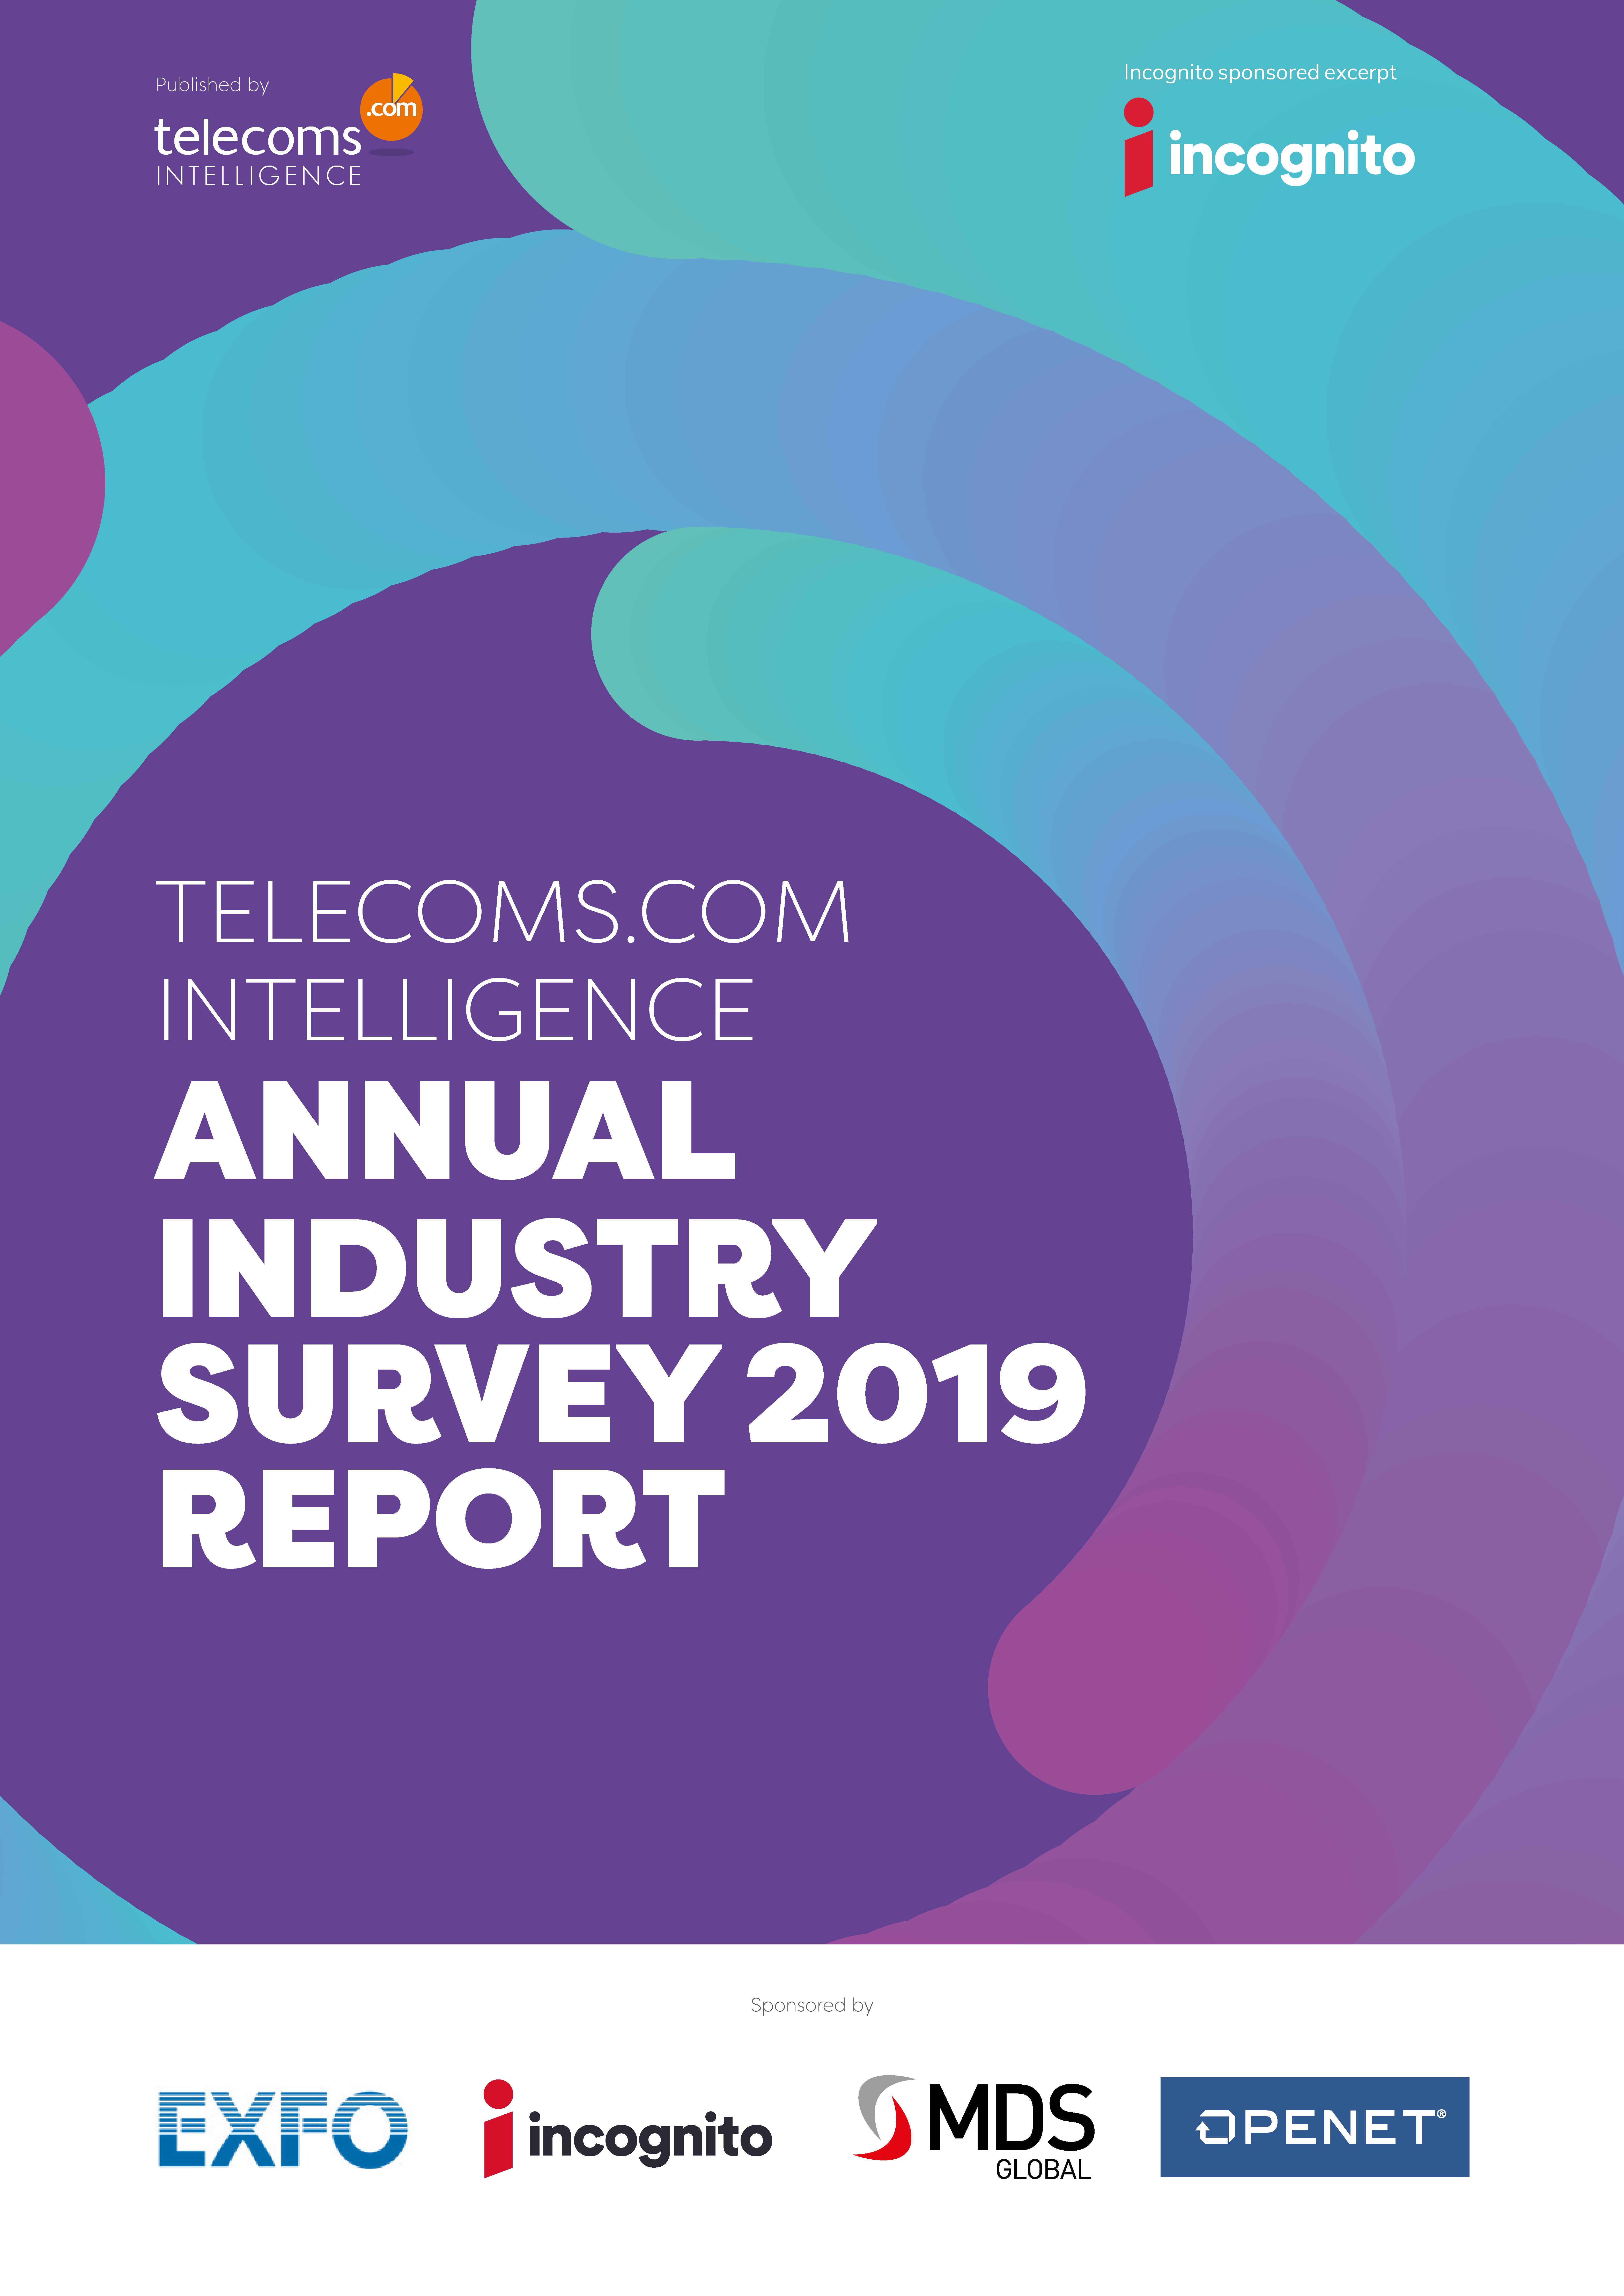 Telecoms.com Annual Industry Survey 2019 Cover